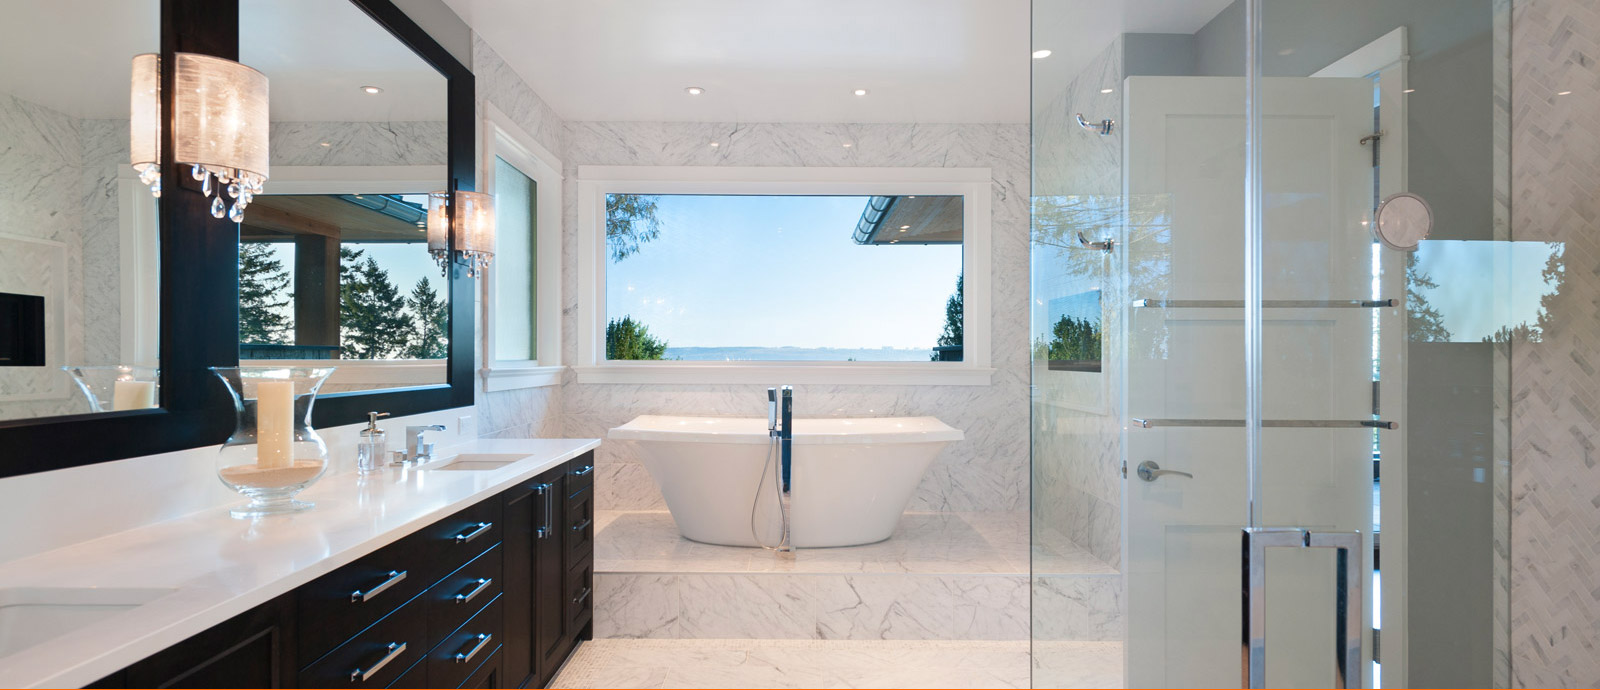 Bathroom Home Interior Design Interior Designer Vancouver Home Design Sarah Gallop Design Inc